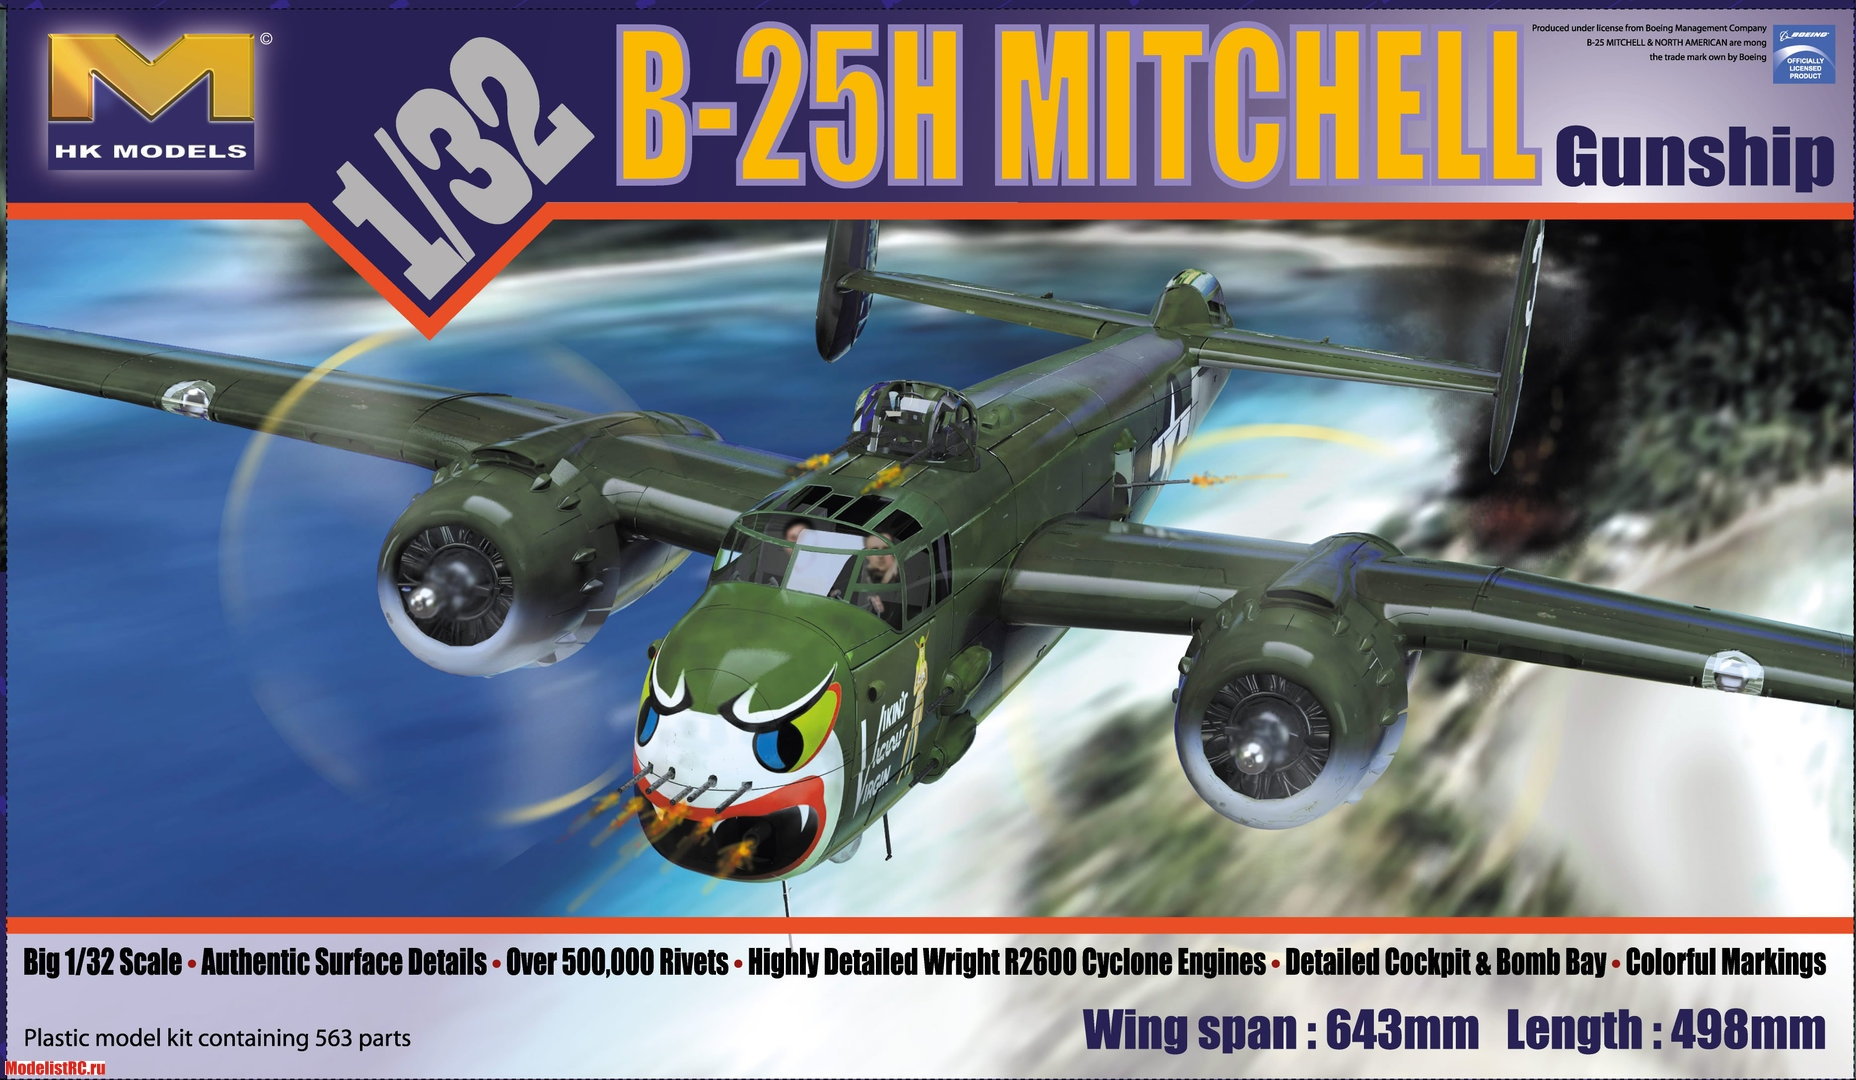 01E03 HK model 1/32 B-25H Mitchel Gunship